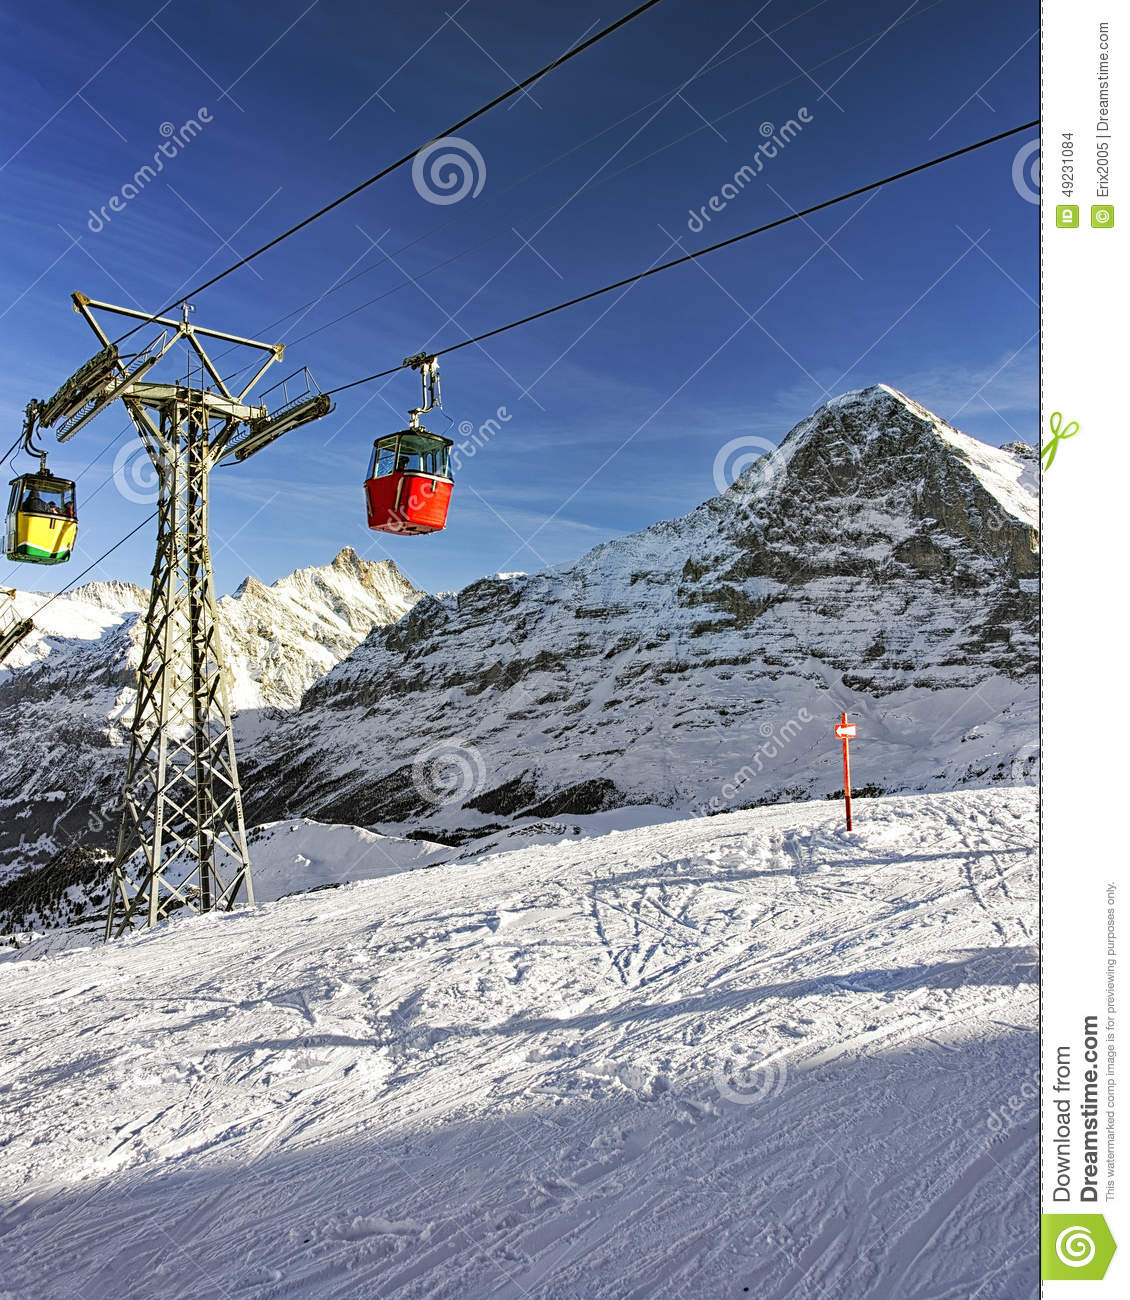 Cable car cabins on winter sport resort in swiss alps stock photo download cable car cabins on winter sport resort in swiss alps stock photo image of publicscrutiny Gallery